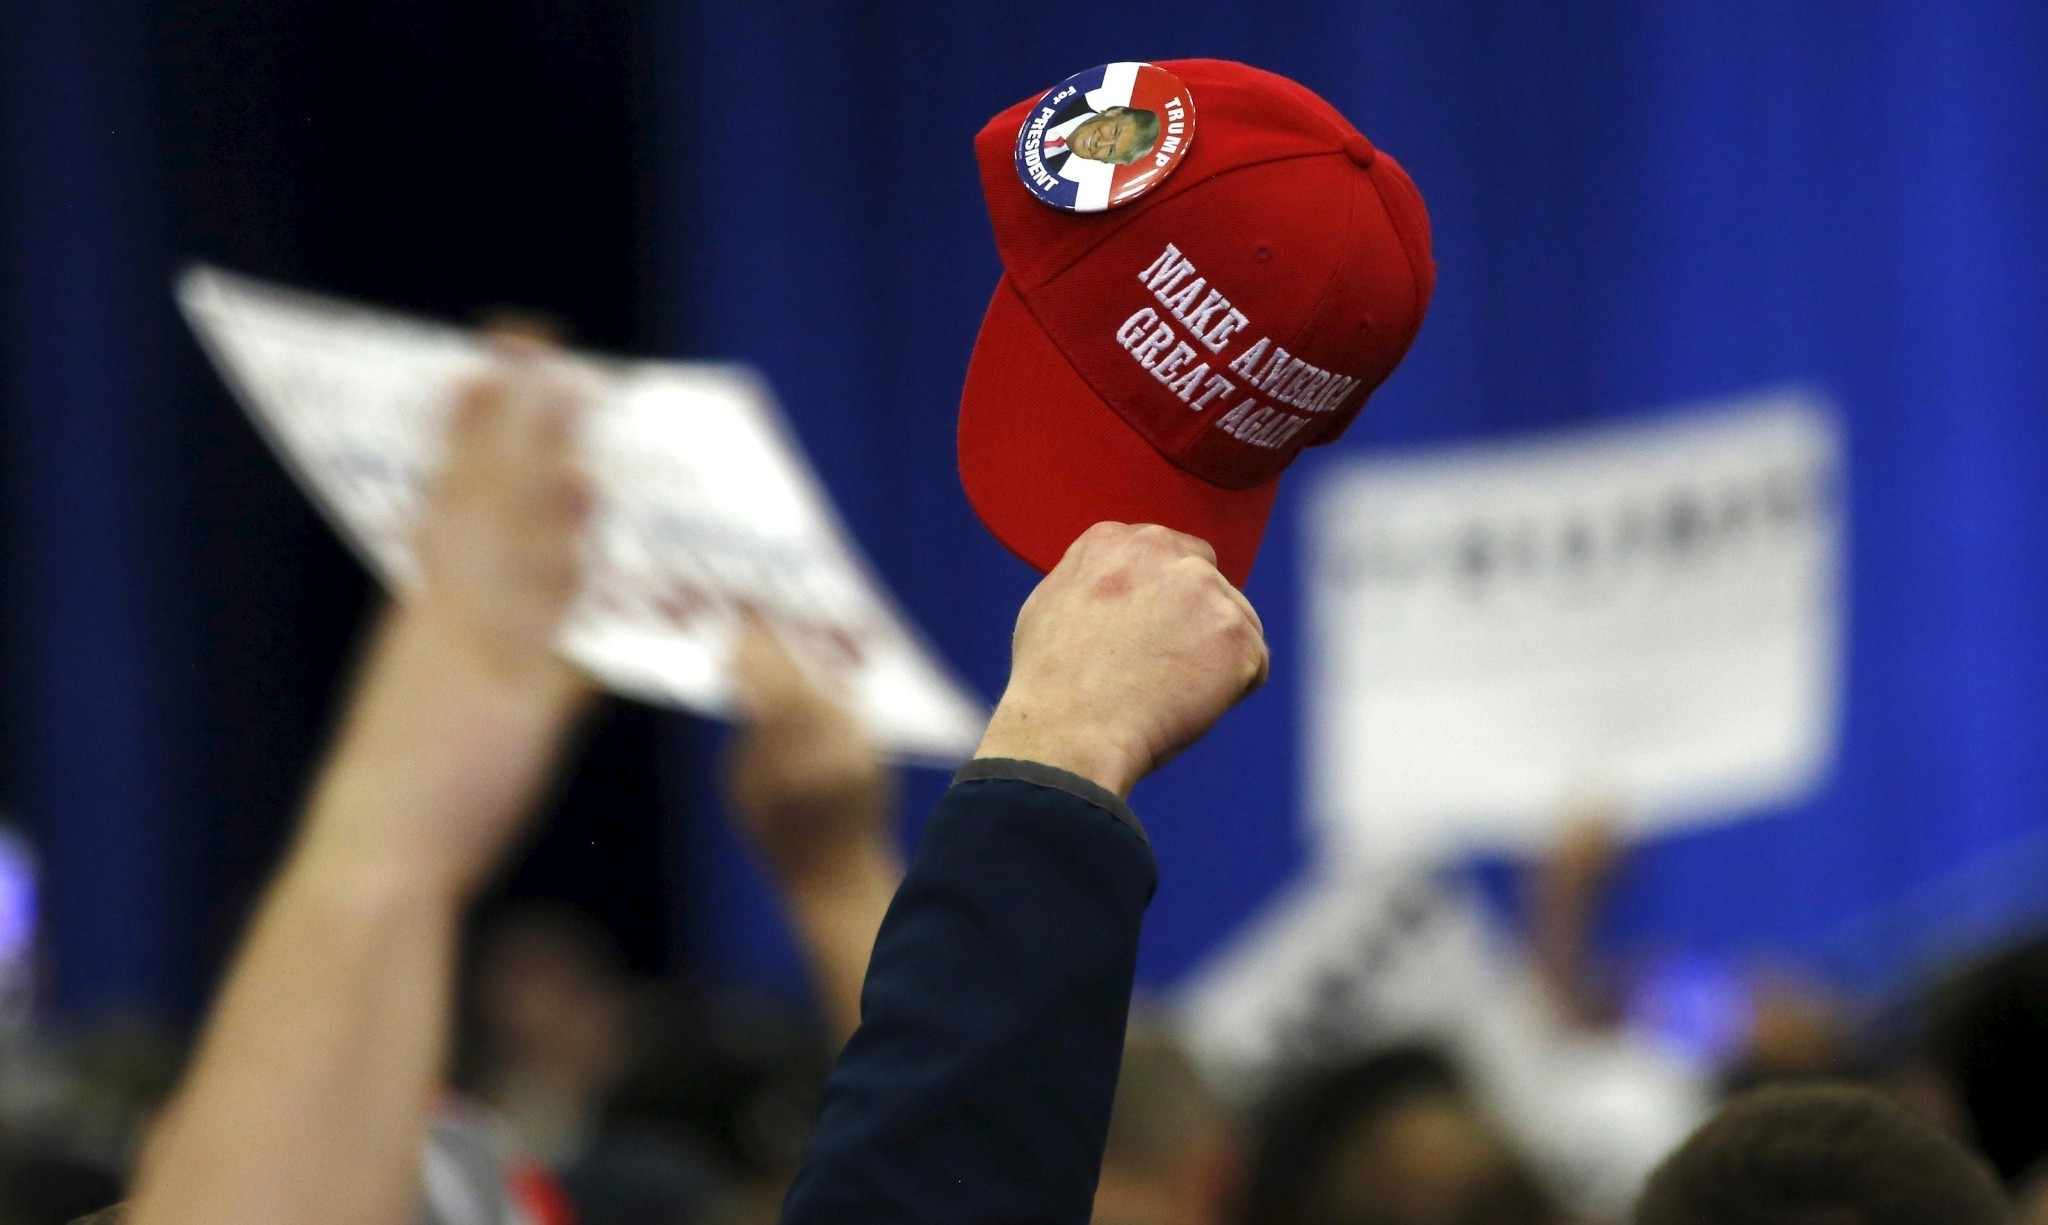 'Not even my wife knows': secret Donald Trump voters speak out